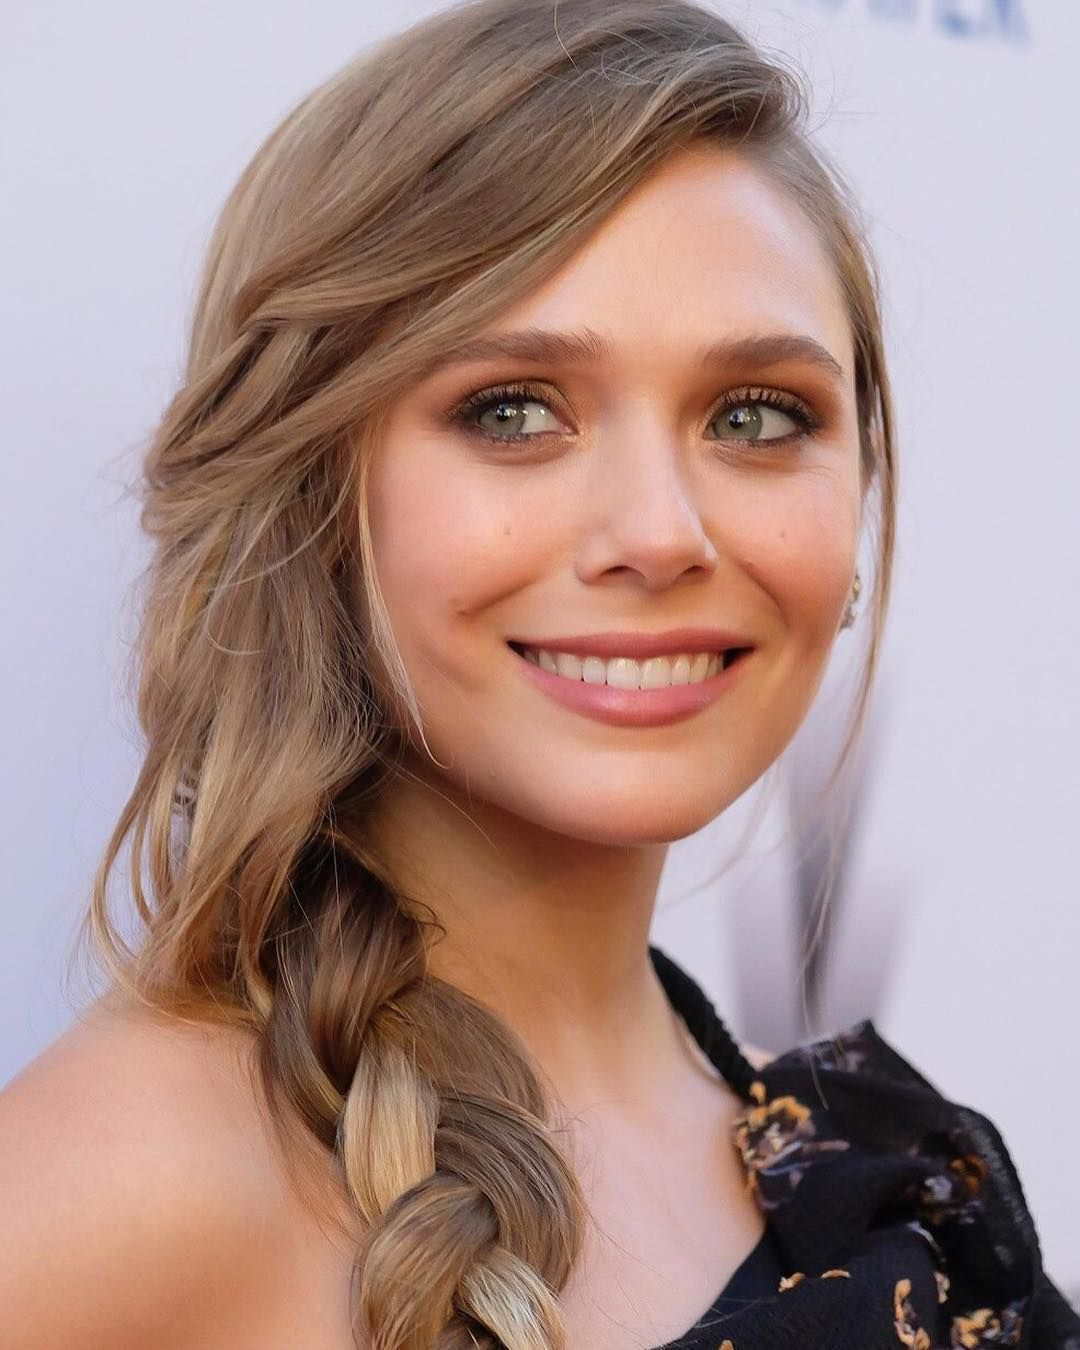 33 Plus Elizabeth Olsen Images Will Prove That She Is Most ...